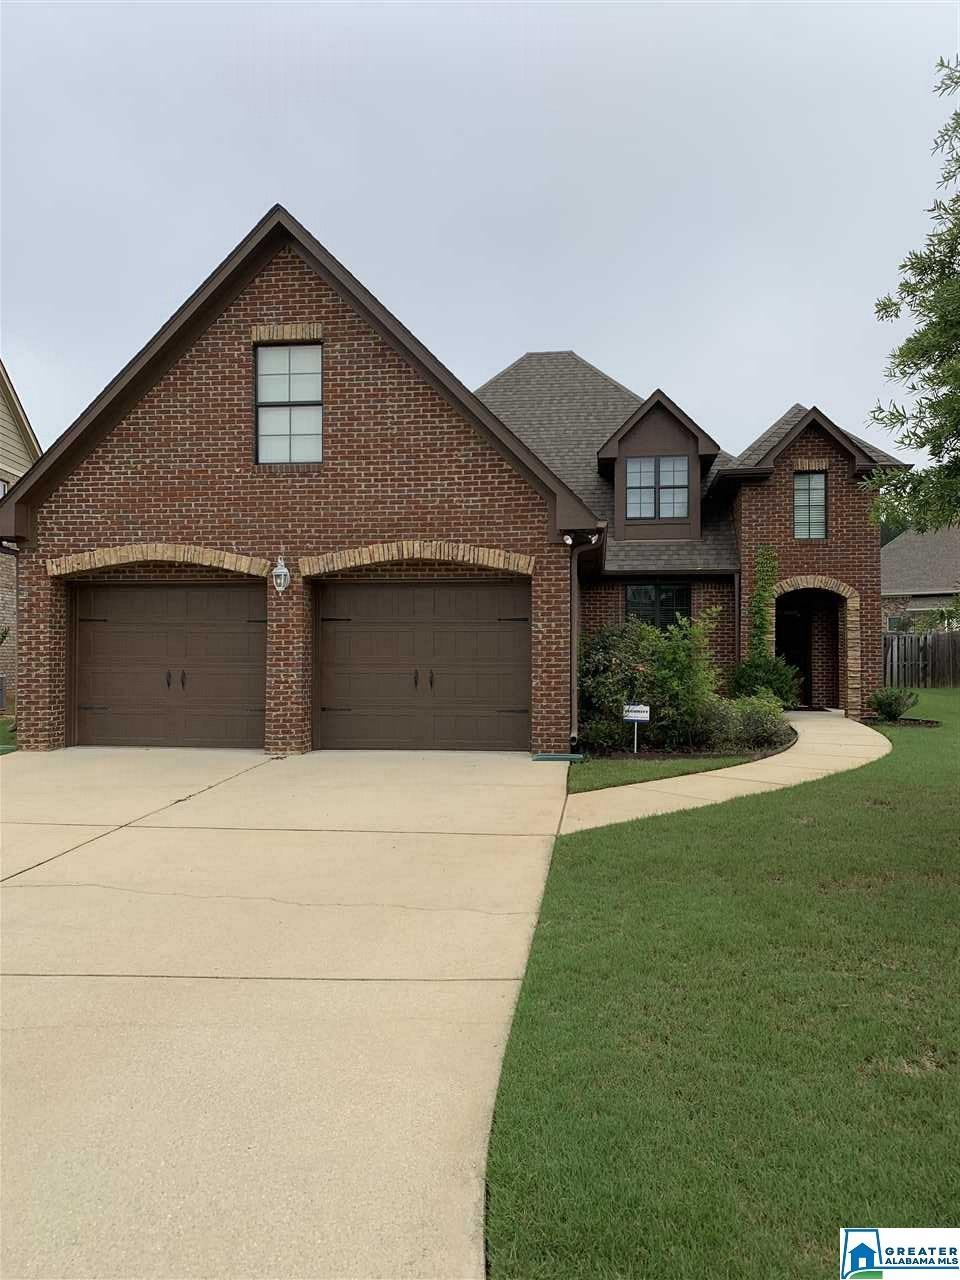 294 SARAH WAY, Kimberly, AL 35091 - MLS#: 888977